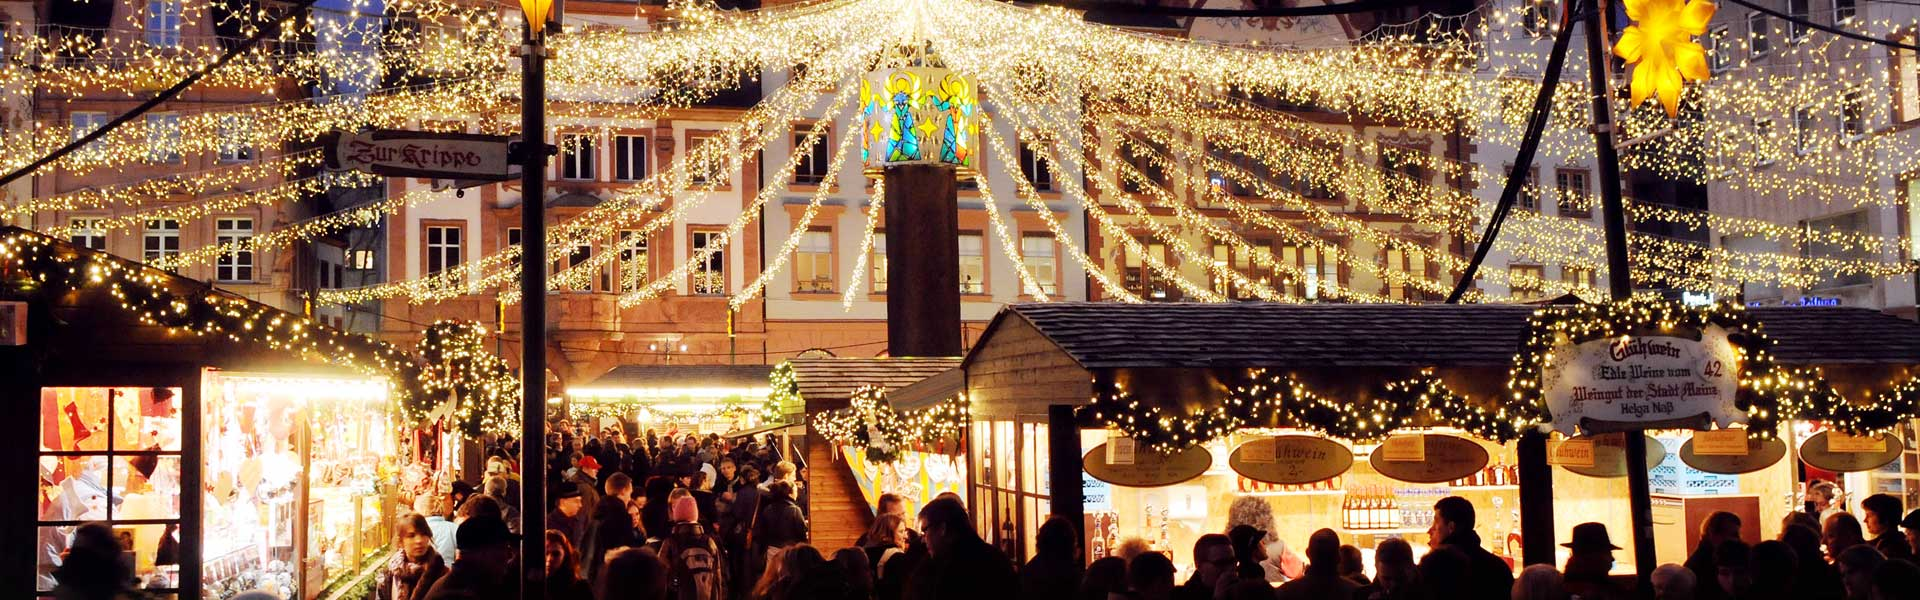 Mainz lit up for the festive season